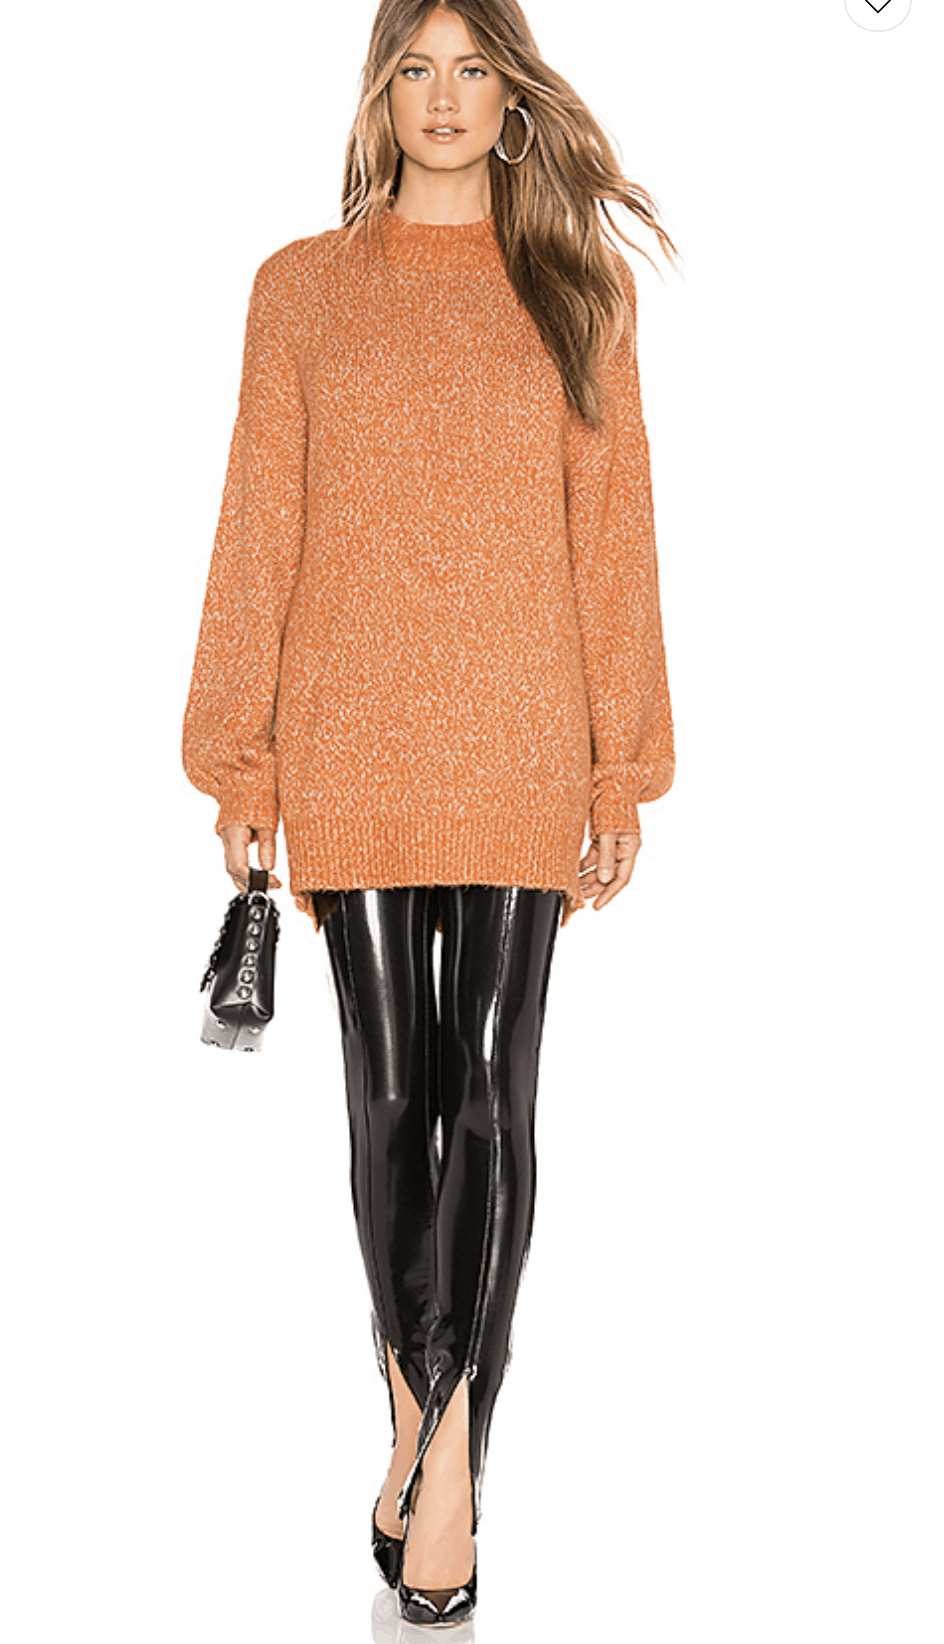 model wearing a orange sweater, leather leggings, black pumps and black handbag